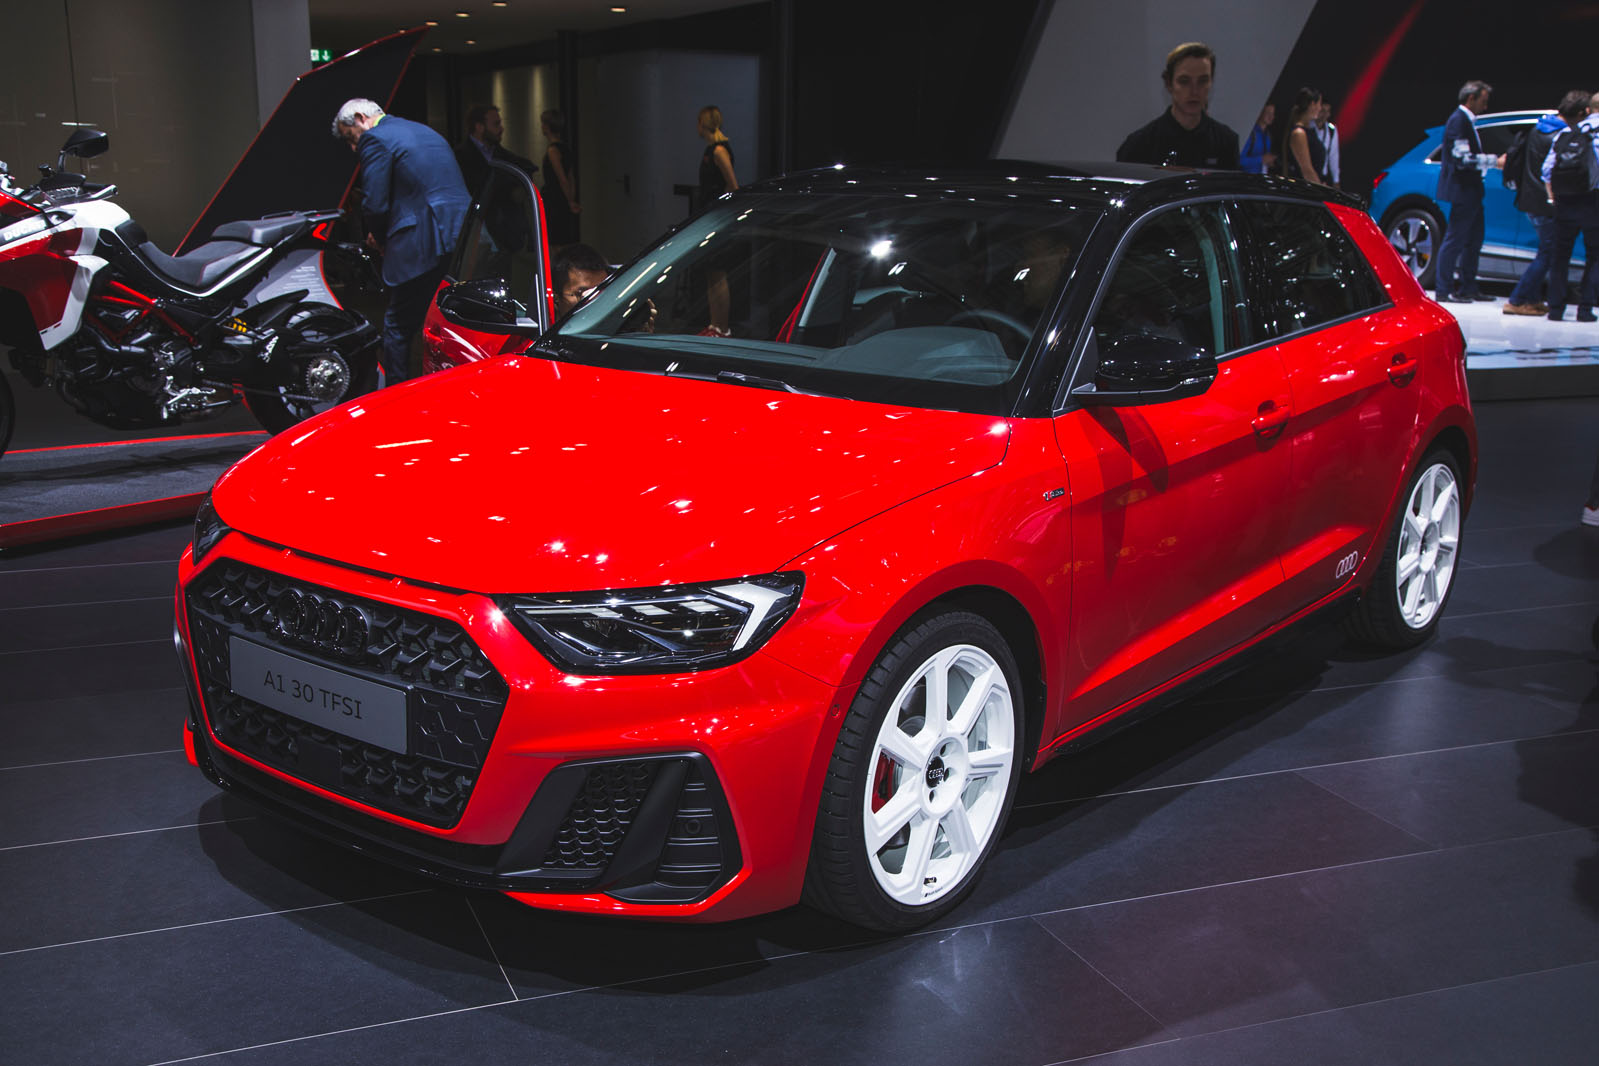 2018 Audi A1 makes first public appearance at Paris motor